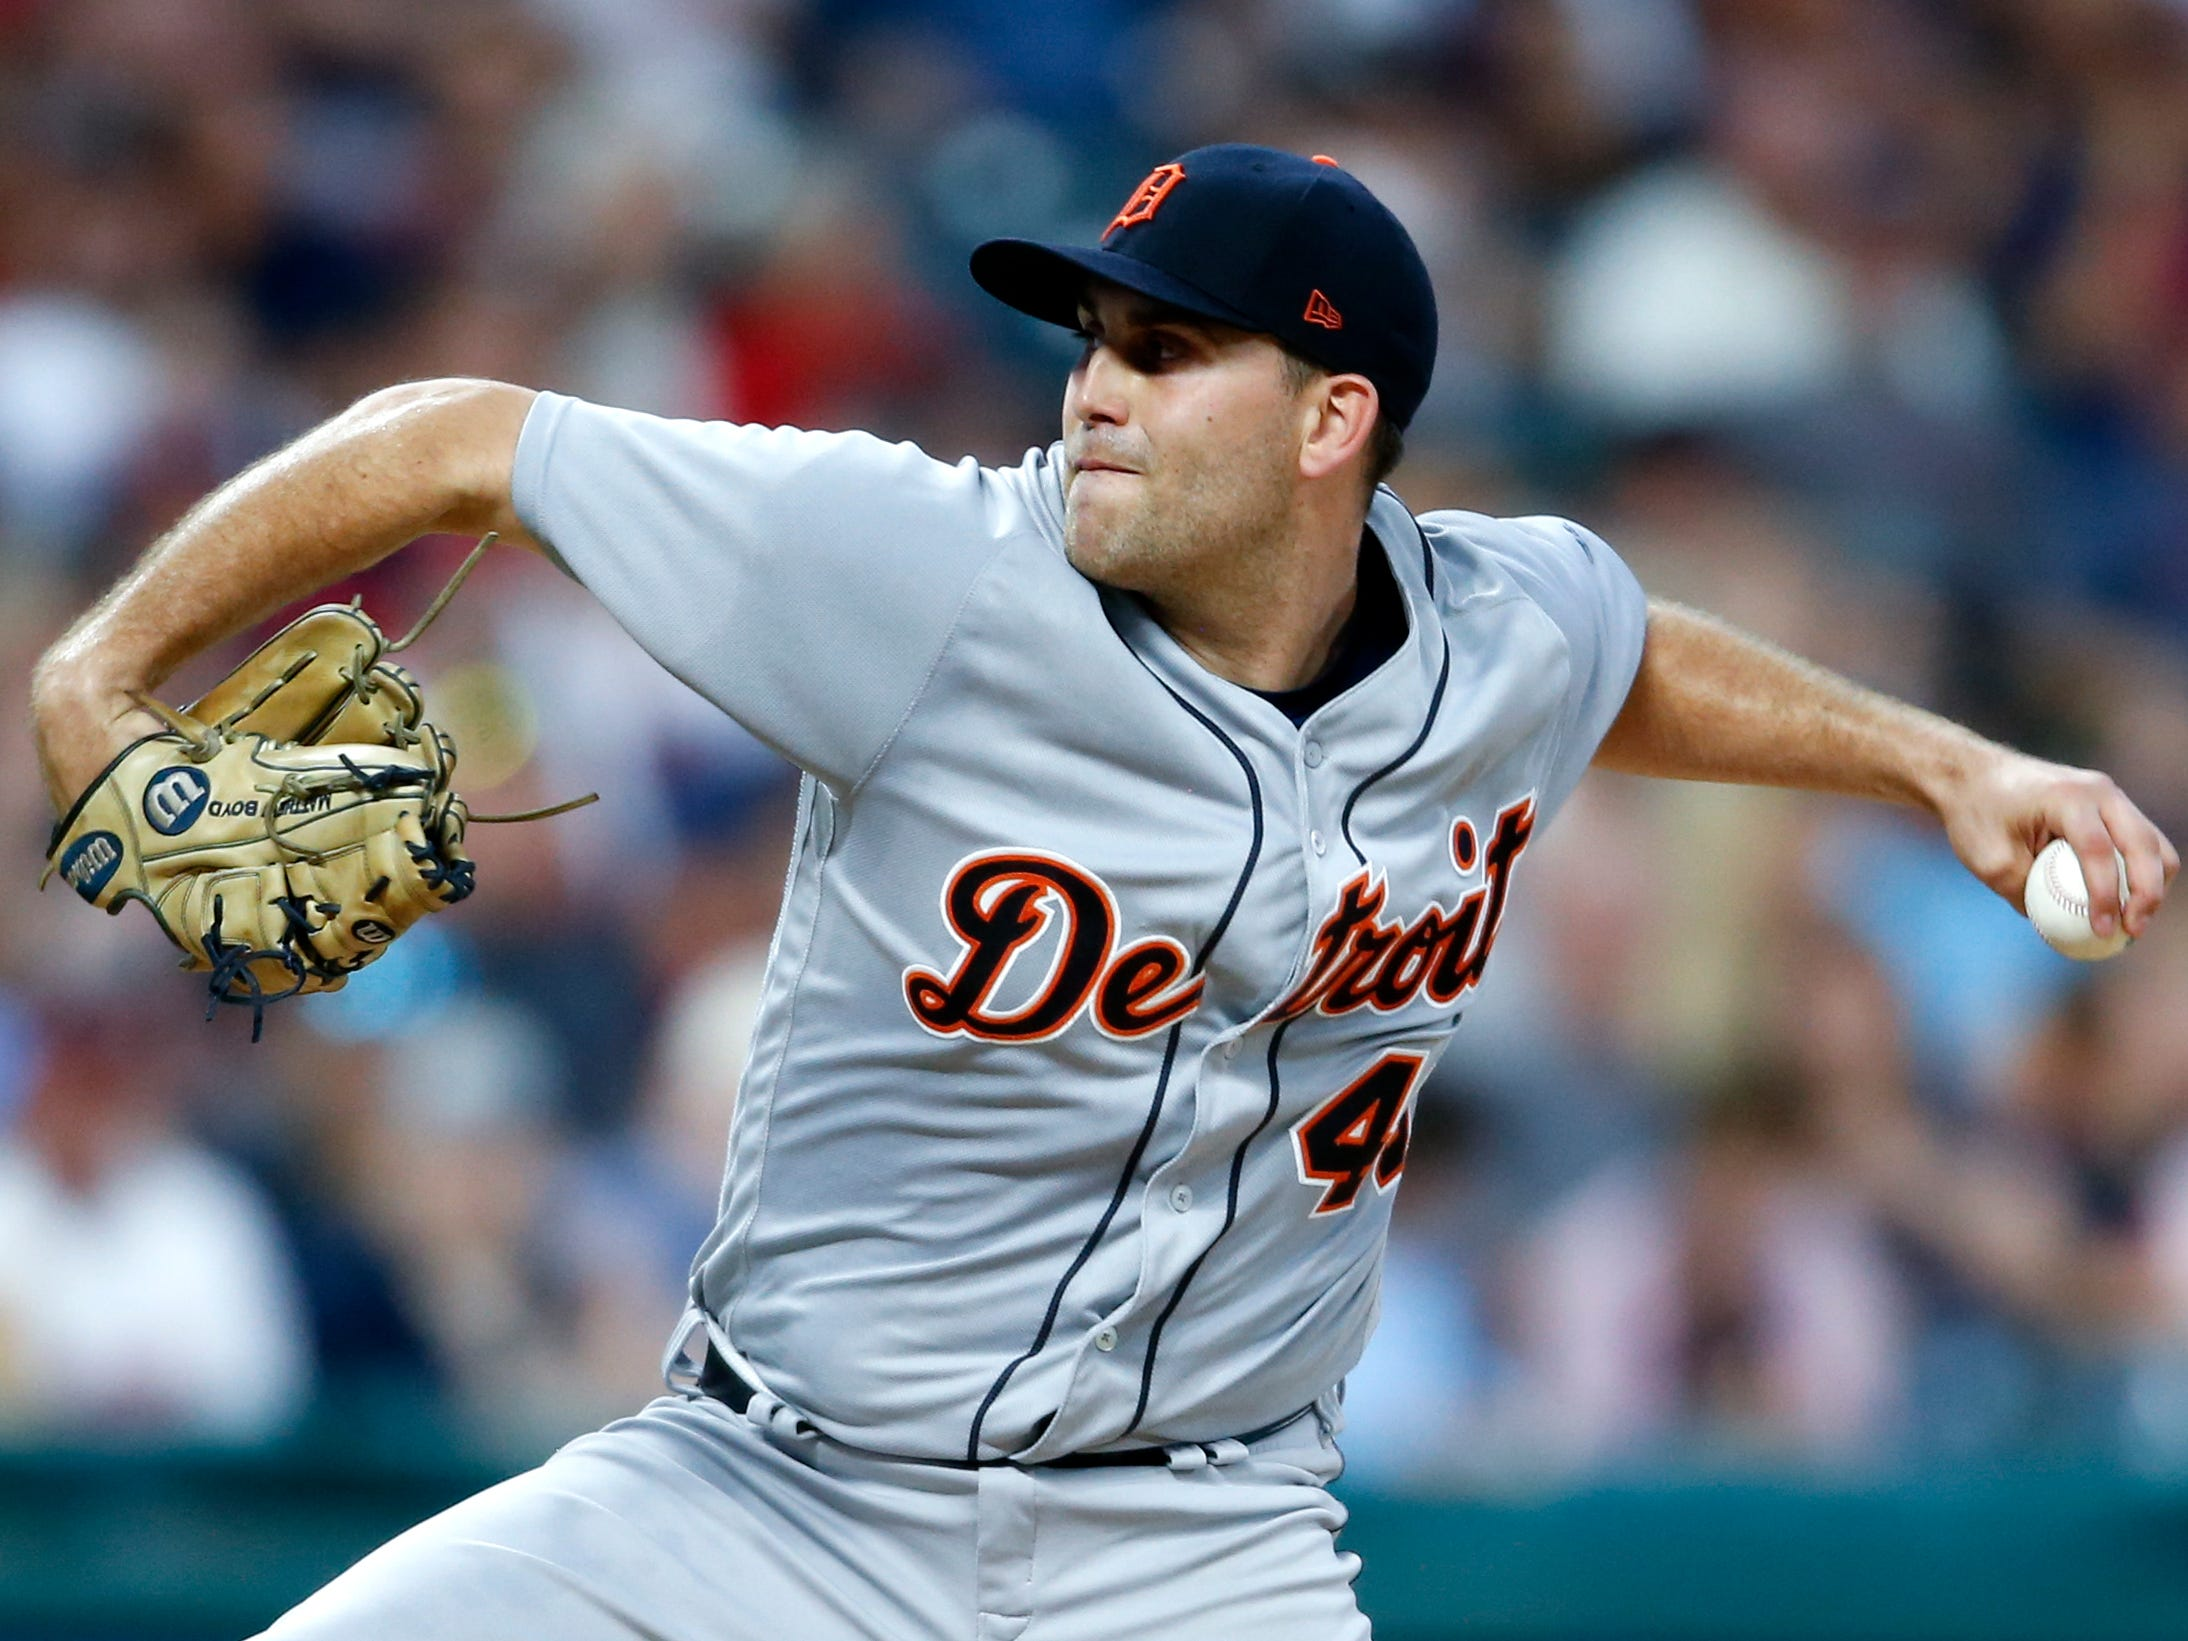 Detroit Tigers starting pitcher Matthew Boyd delivers against the Cleveland Indians during the second inning of a baseball game, Friday, Sept. 14, 2018, in Cleveland.